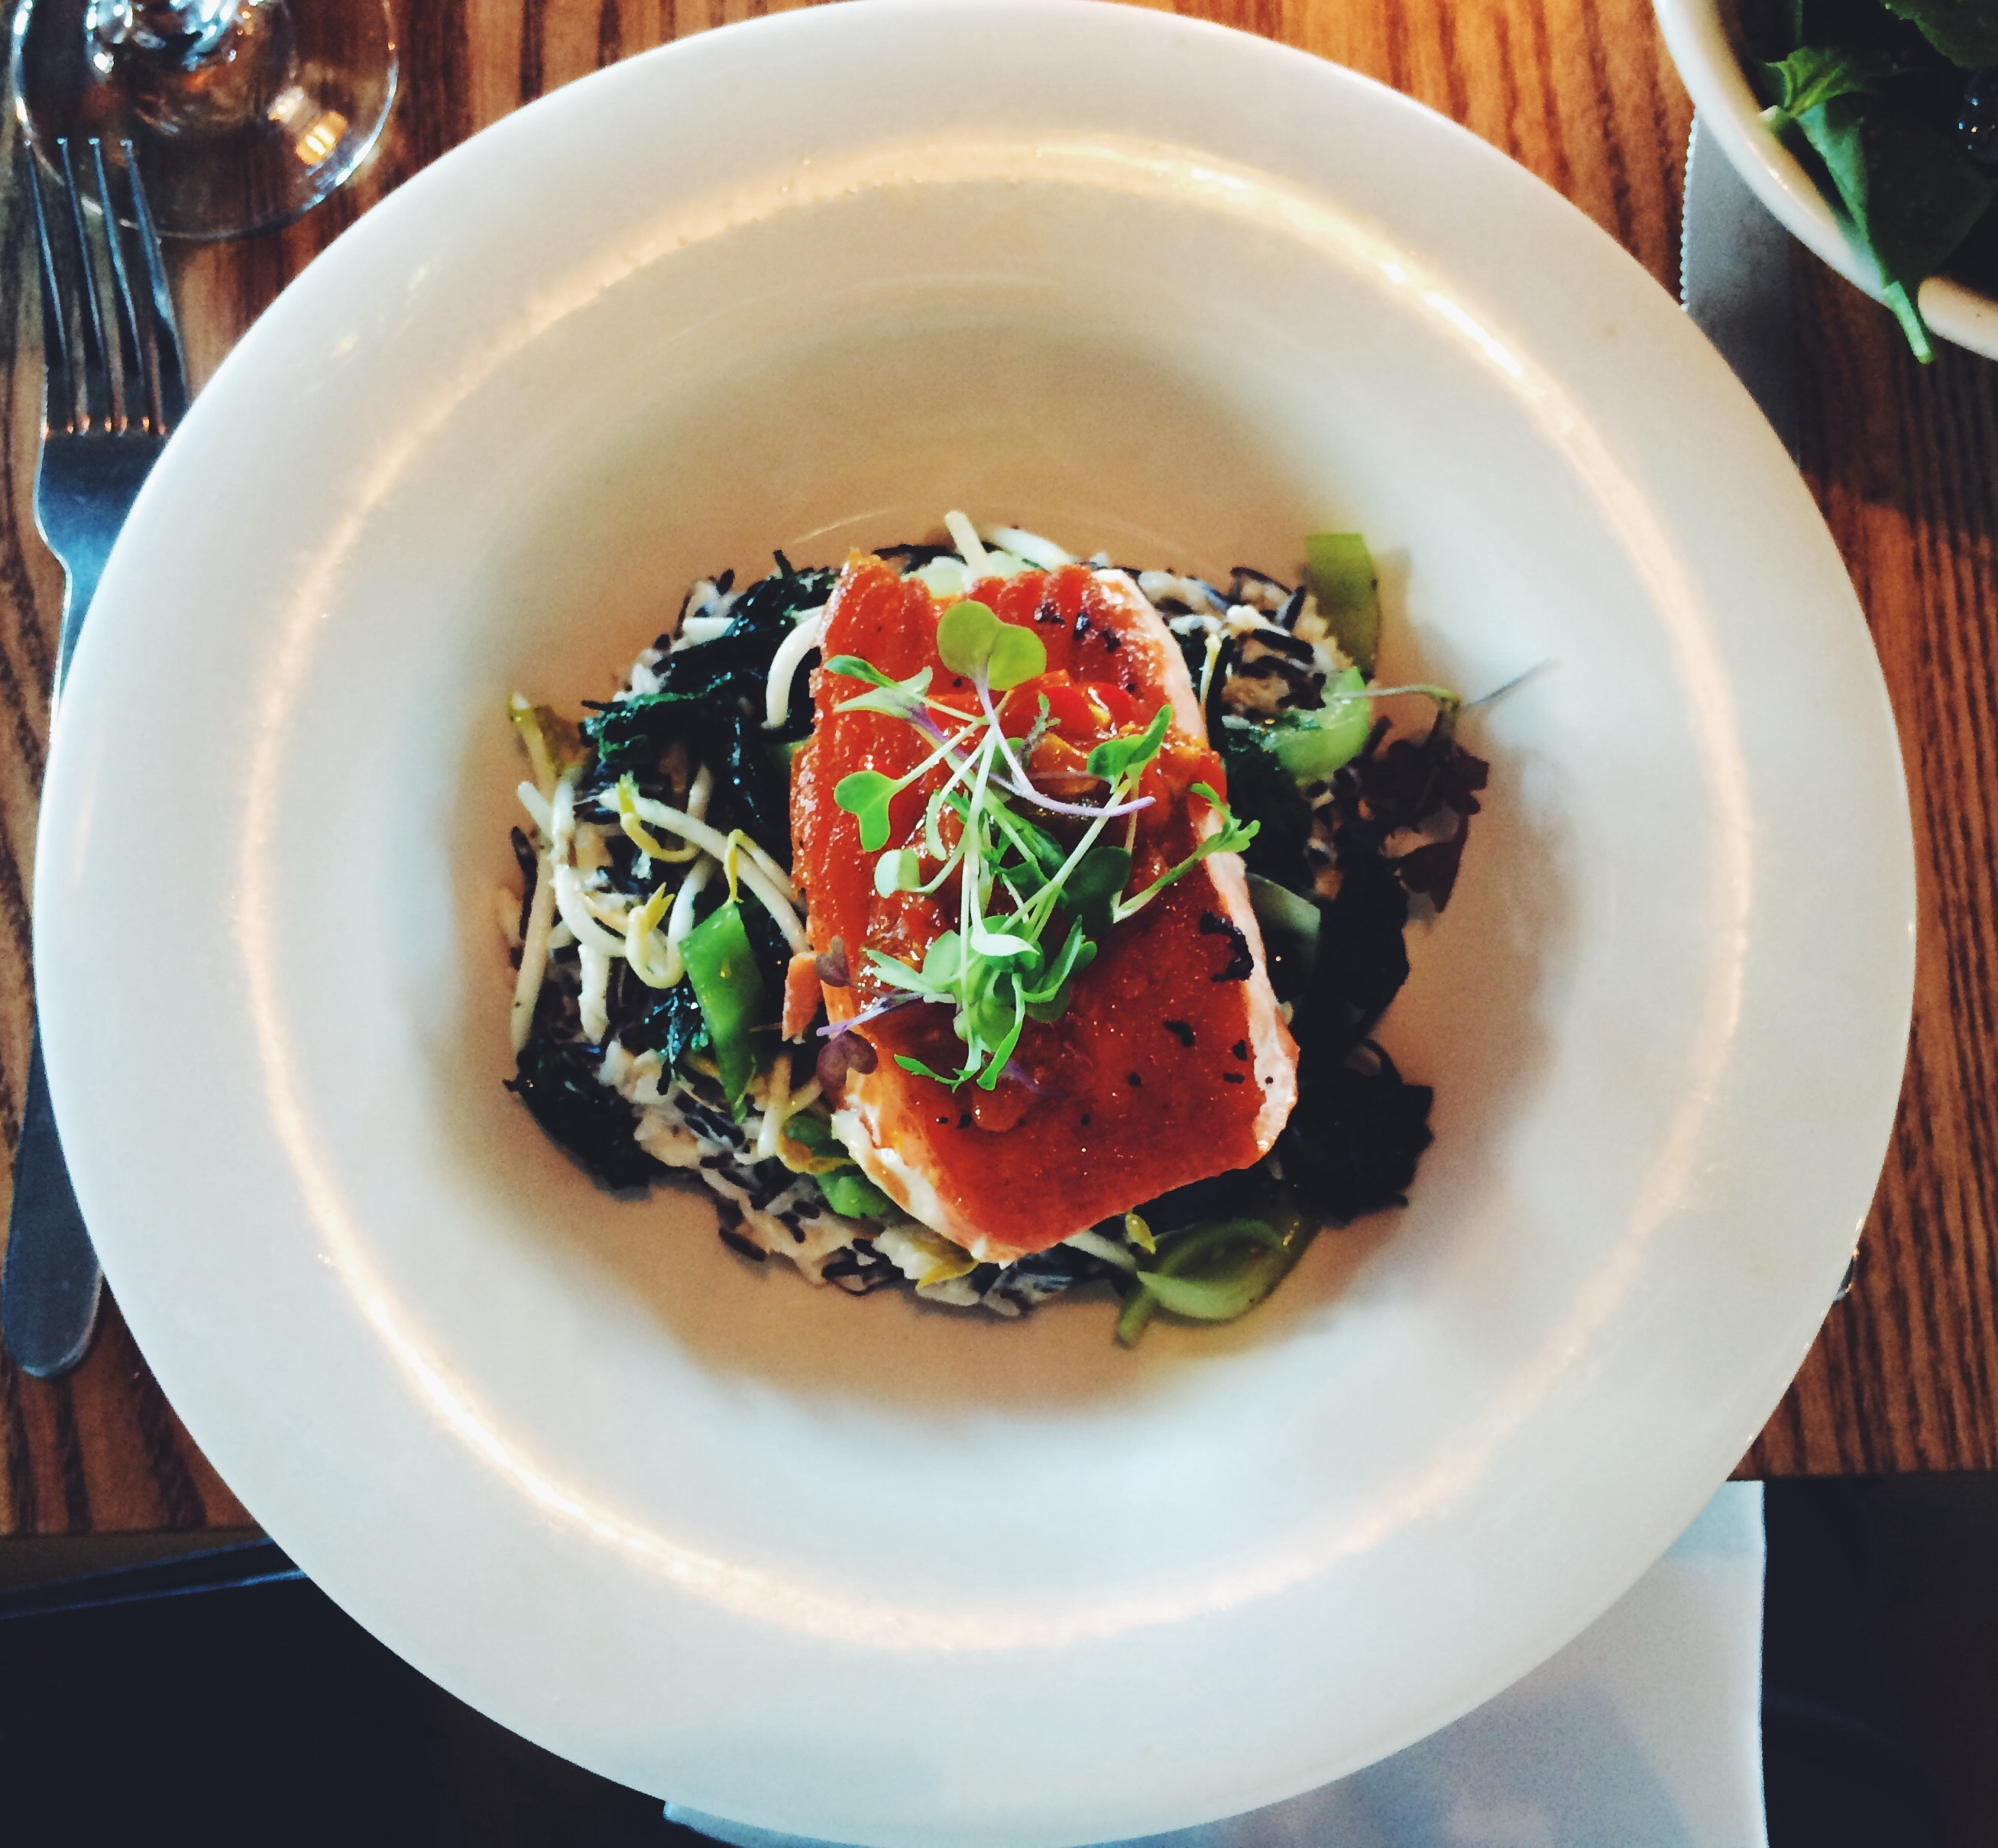 Panfried salmon, coconut & chilli wild rice, bok choy, black sesame, seaweed salad, chilli sambal $3